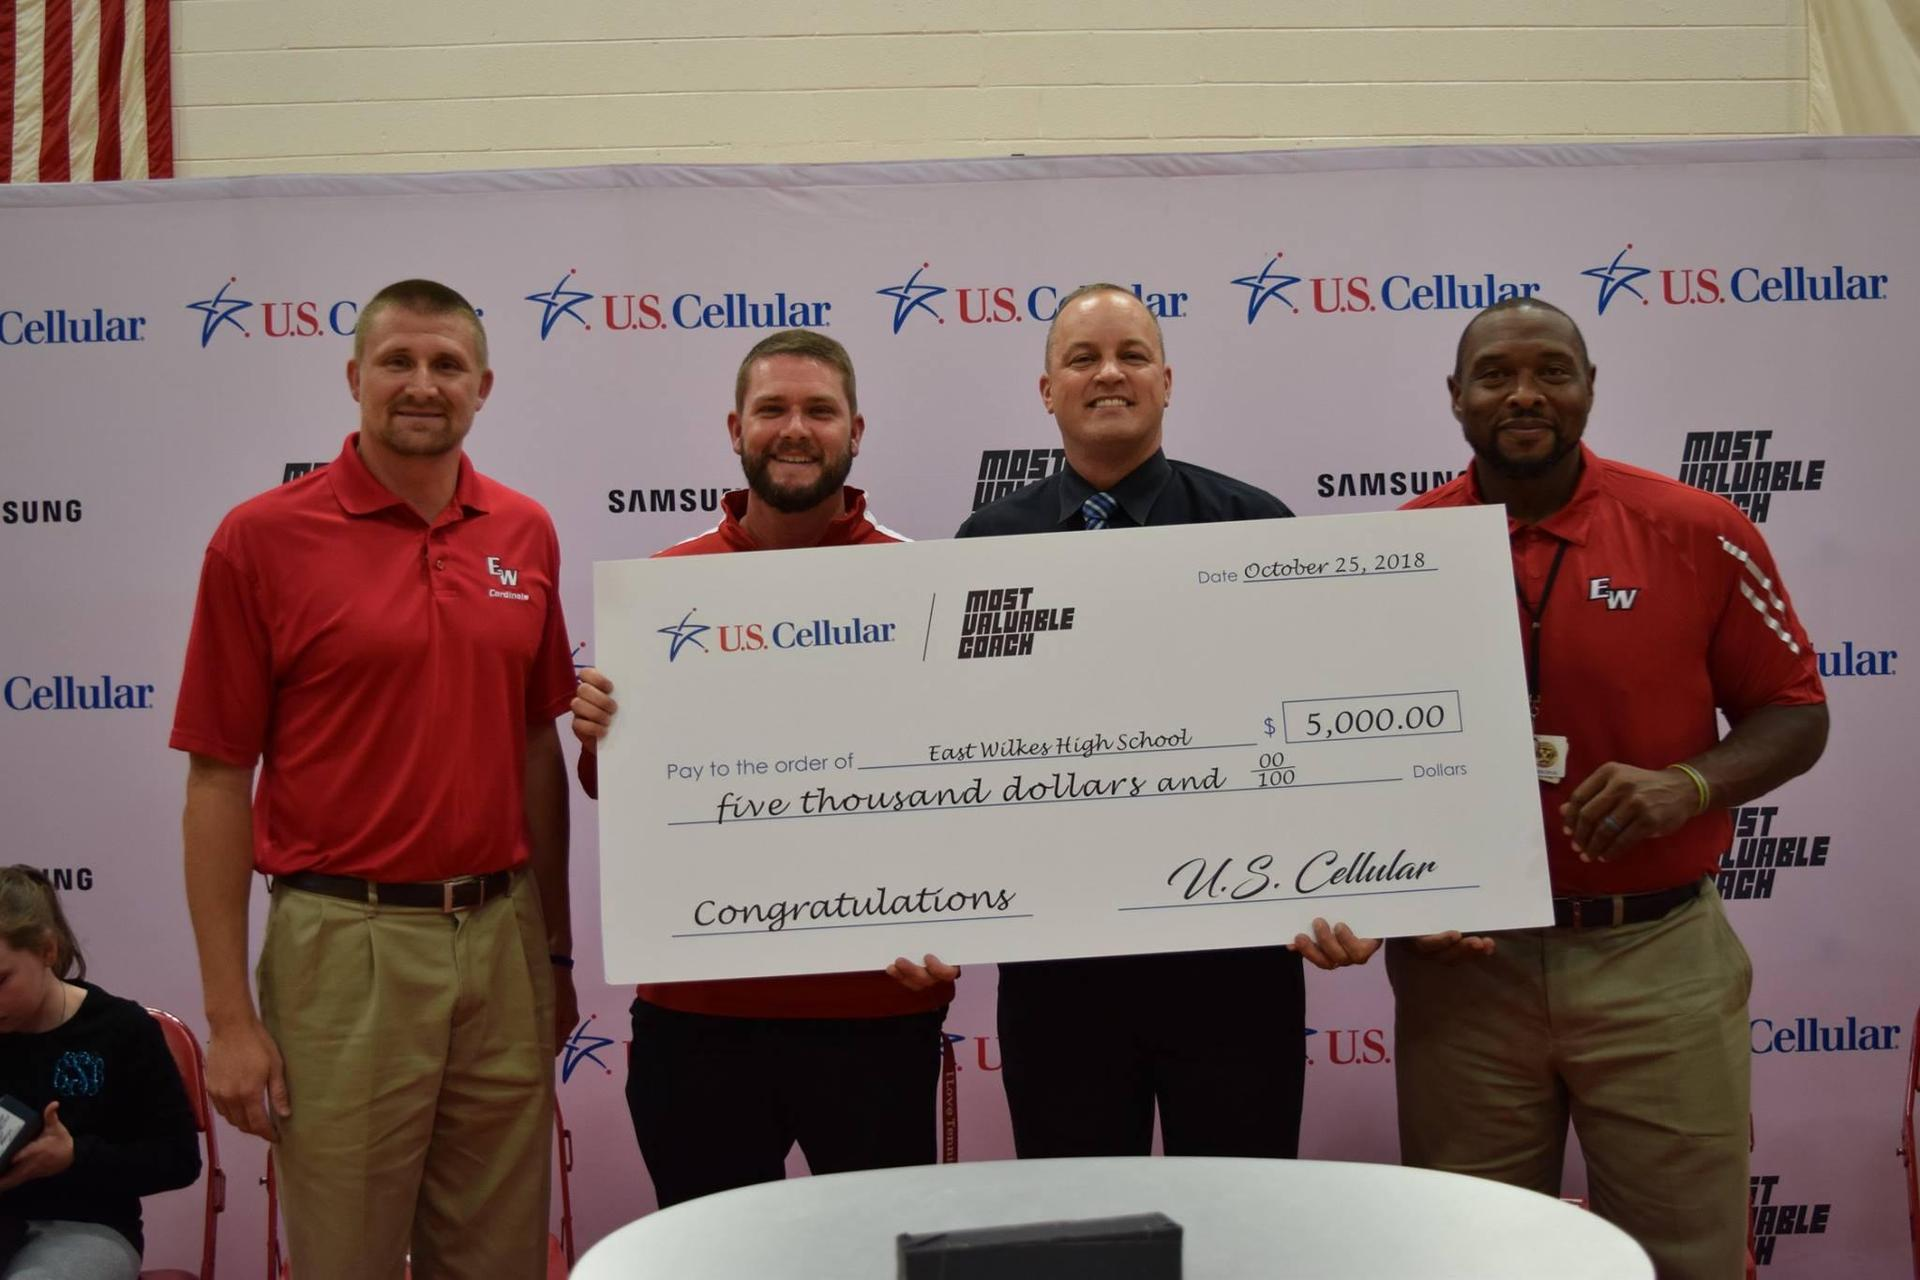 Coach Aaron Simmons accepts $5,000 award for EWHS for making top 15 in U.S. Cellular's Most Valuable Coach Award